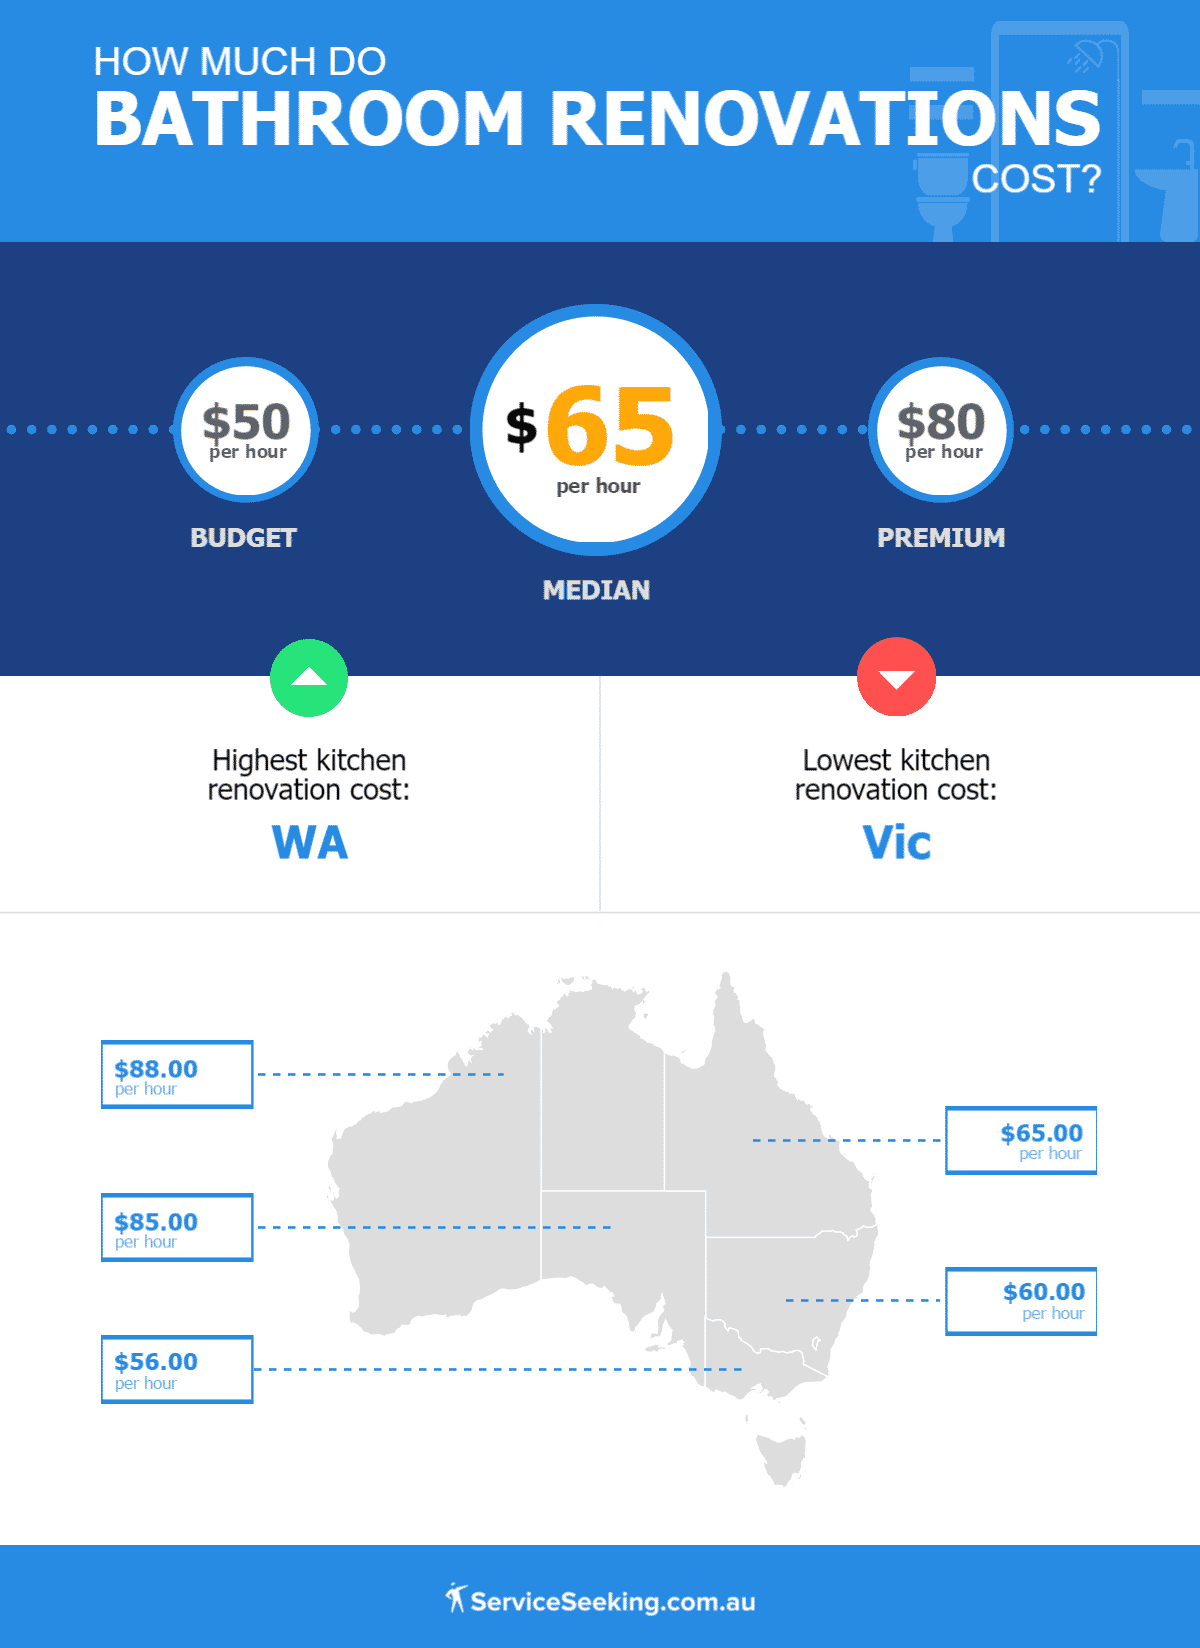 Cost of bathroom renovations across different Australian states